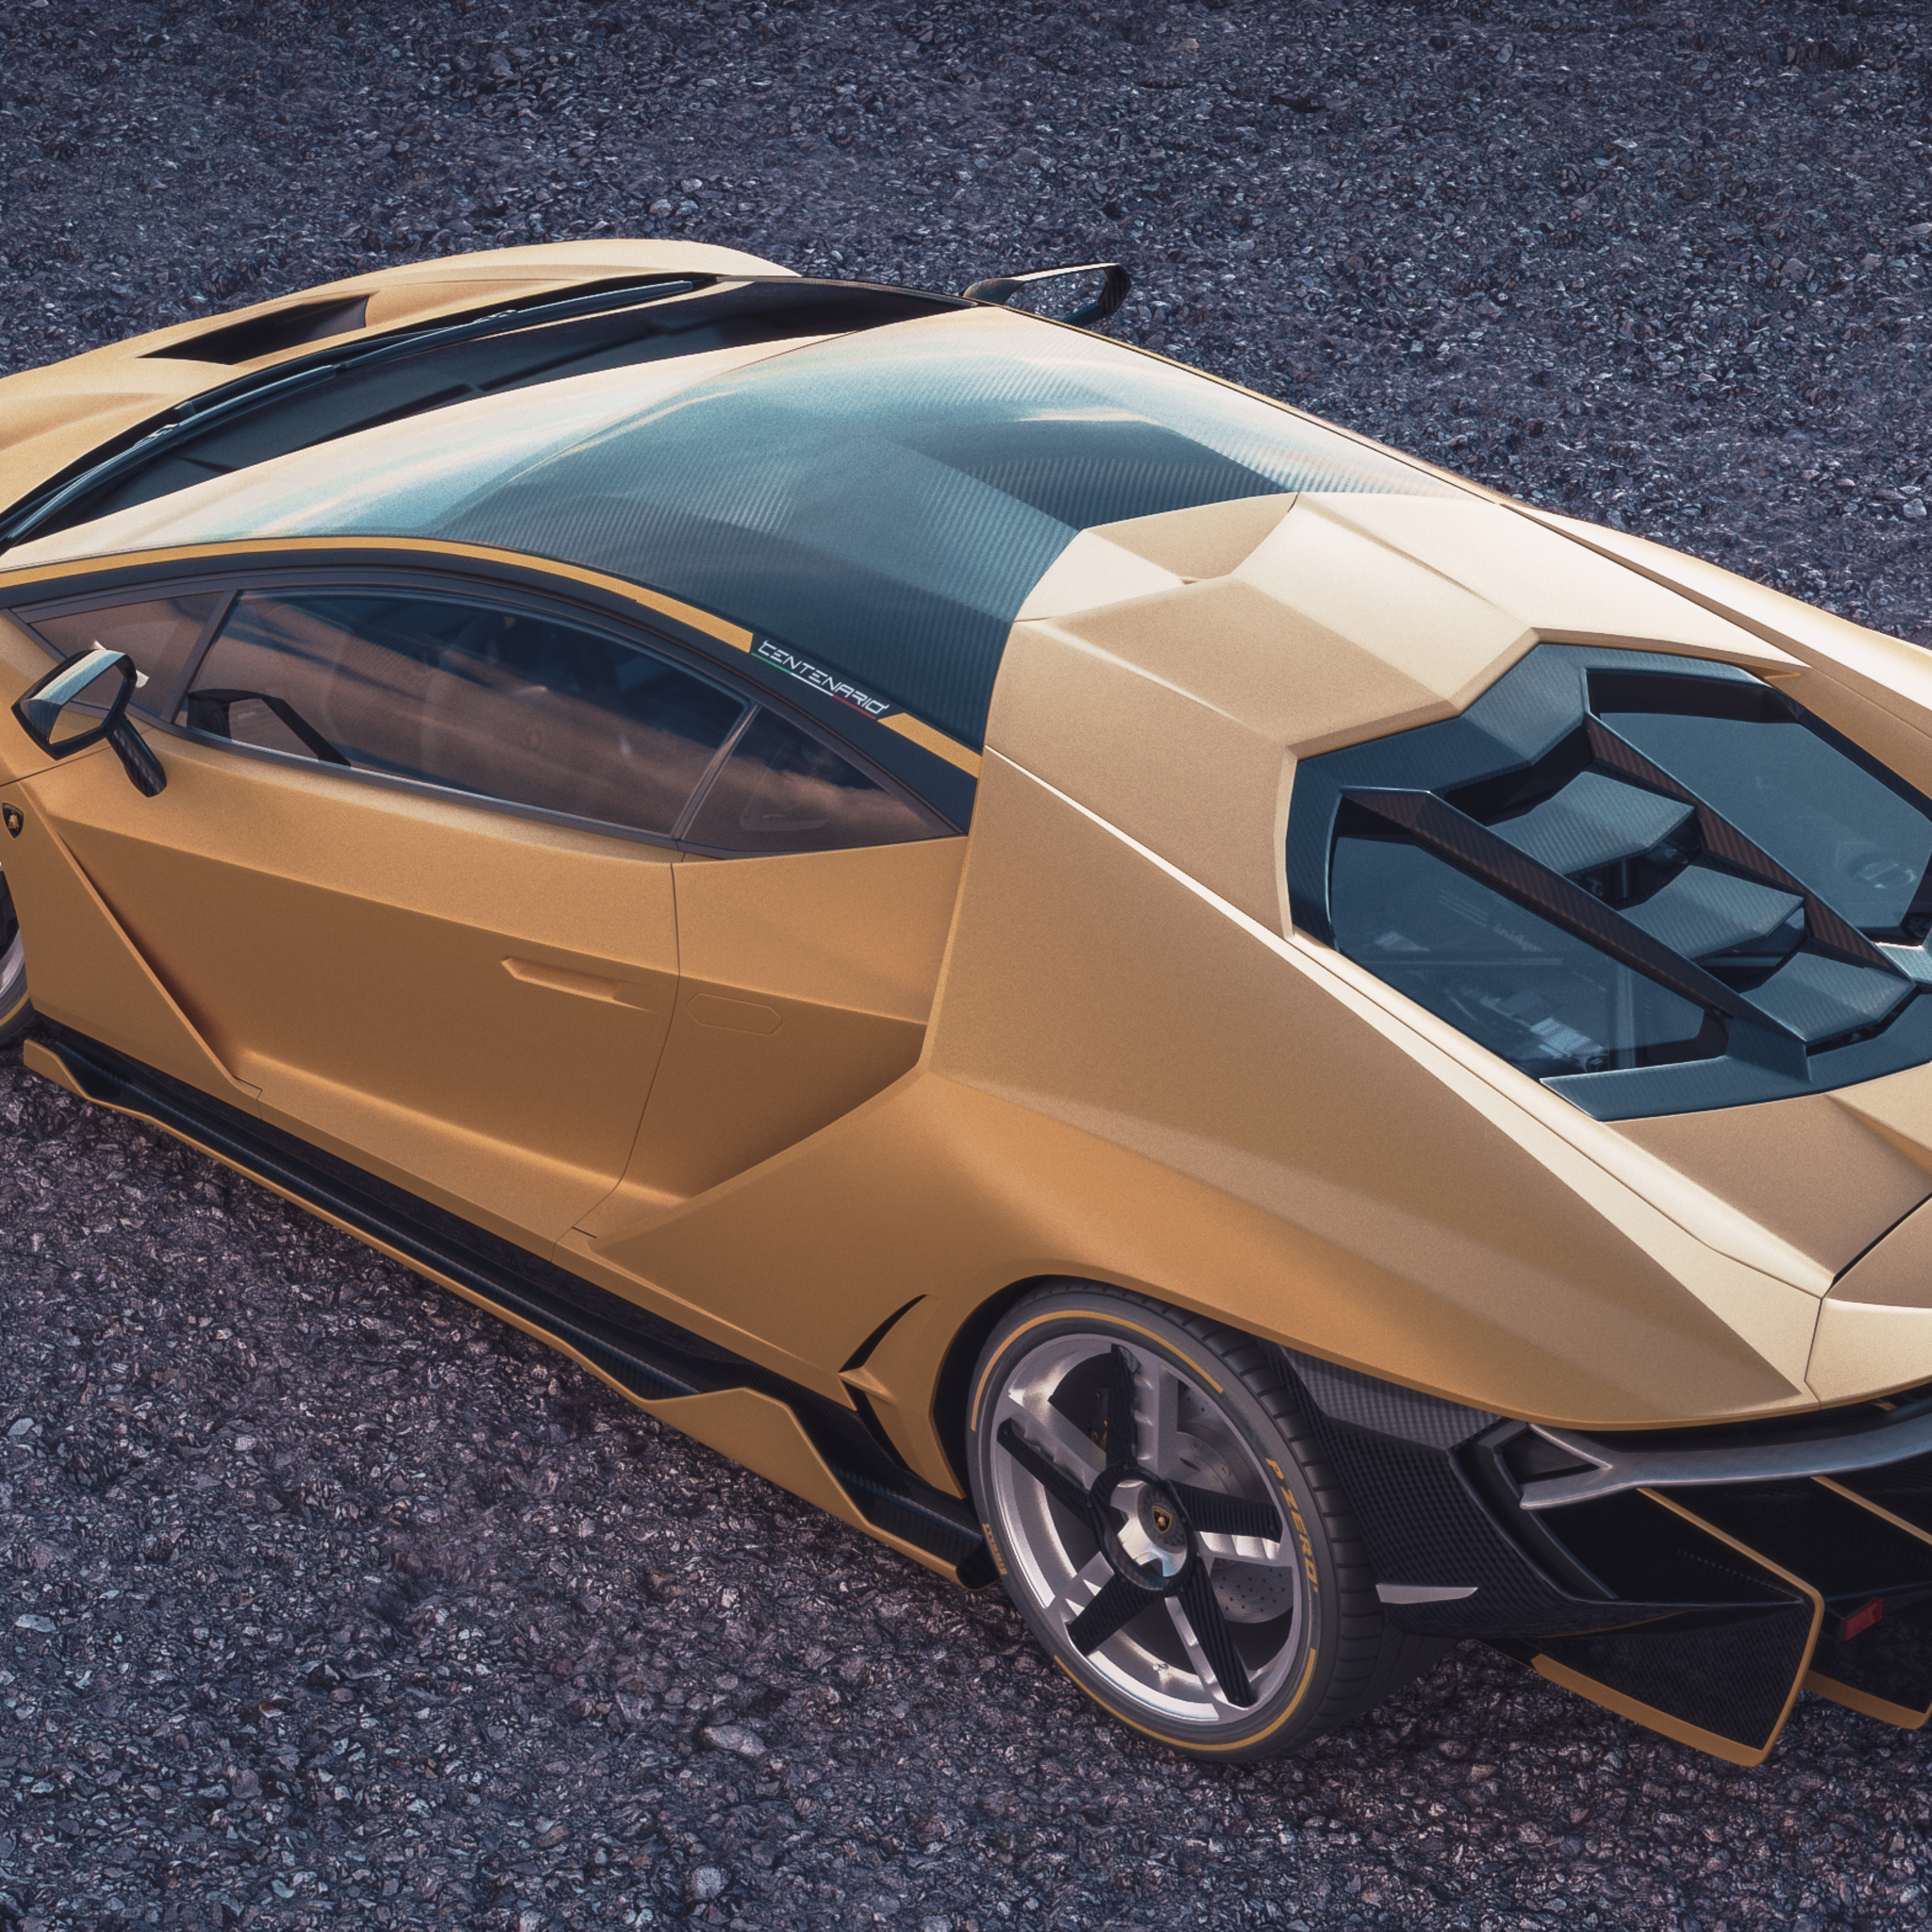 2048x2048 Lamborghini Centenario Upper View Ipad Air Hd 4k